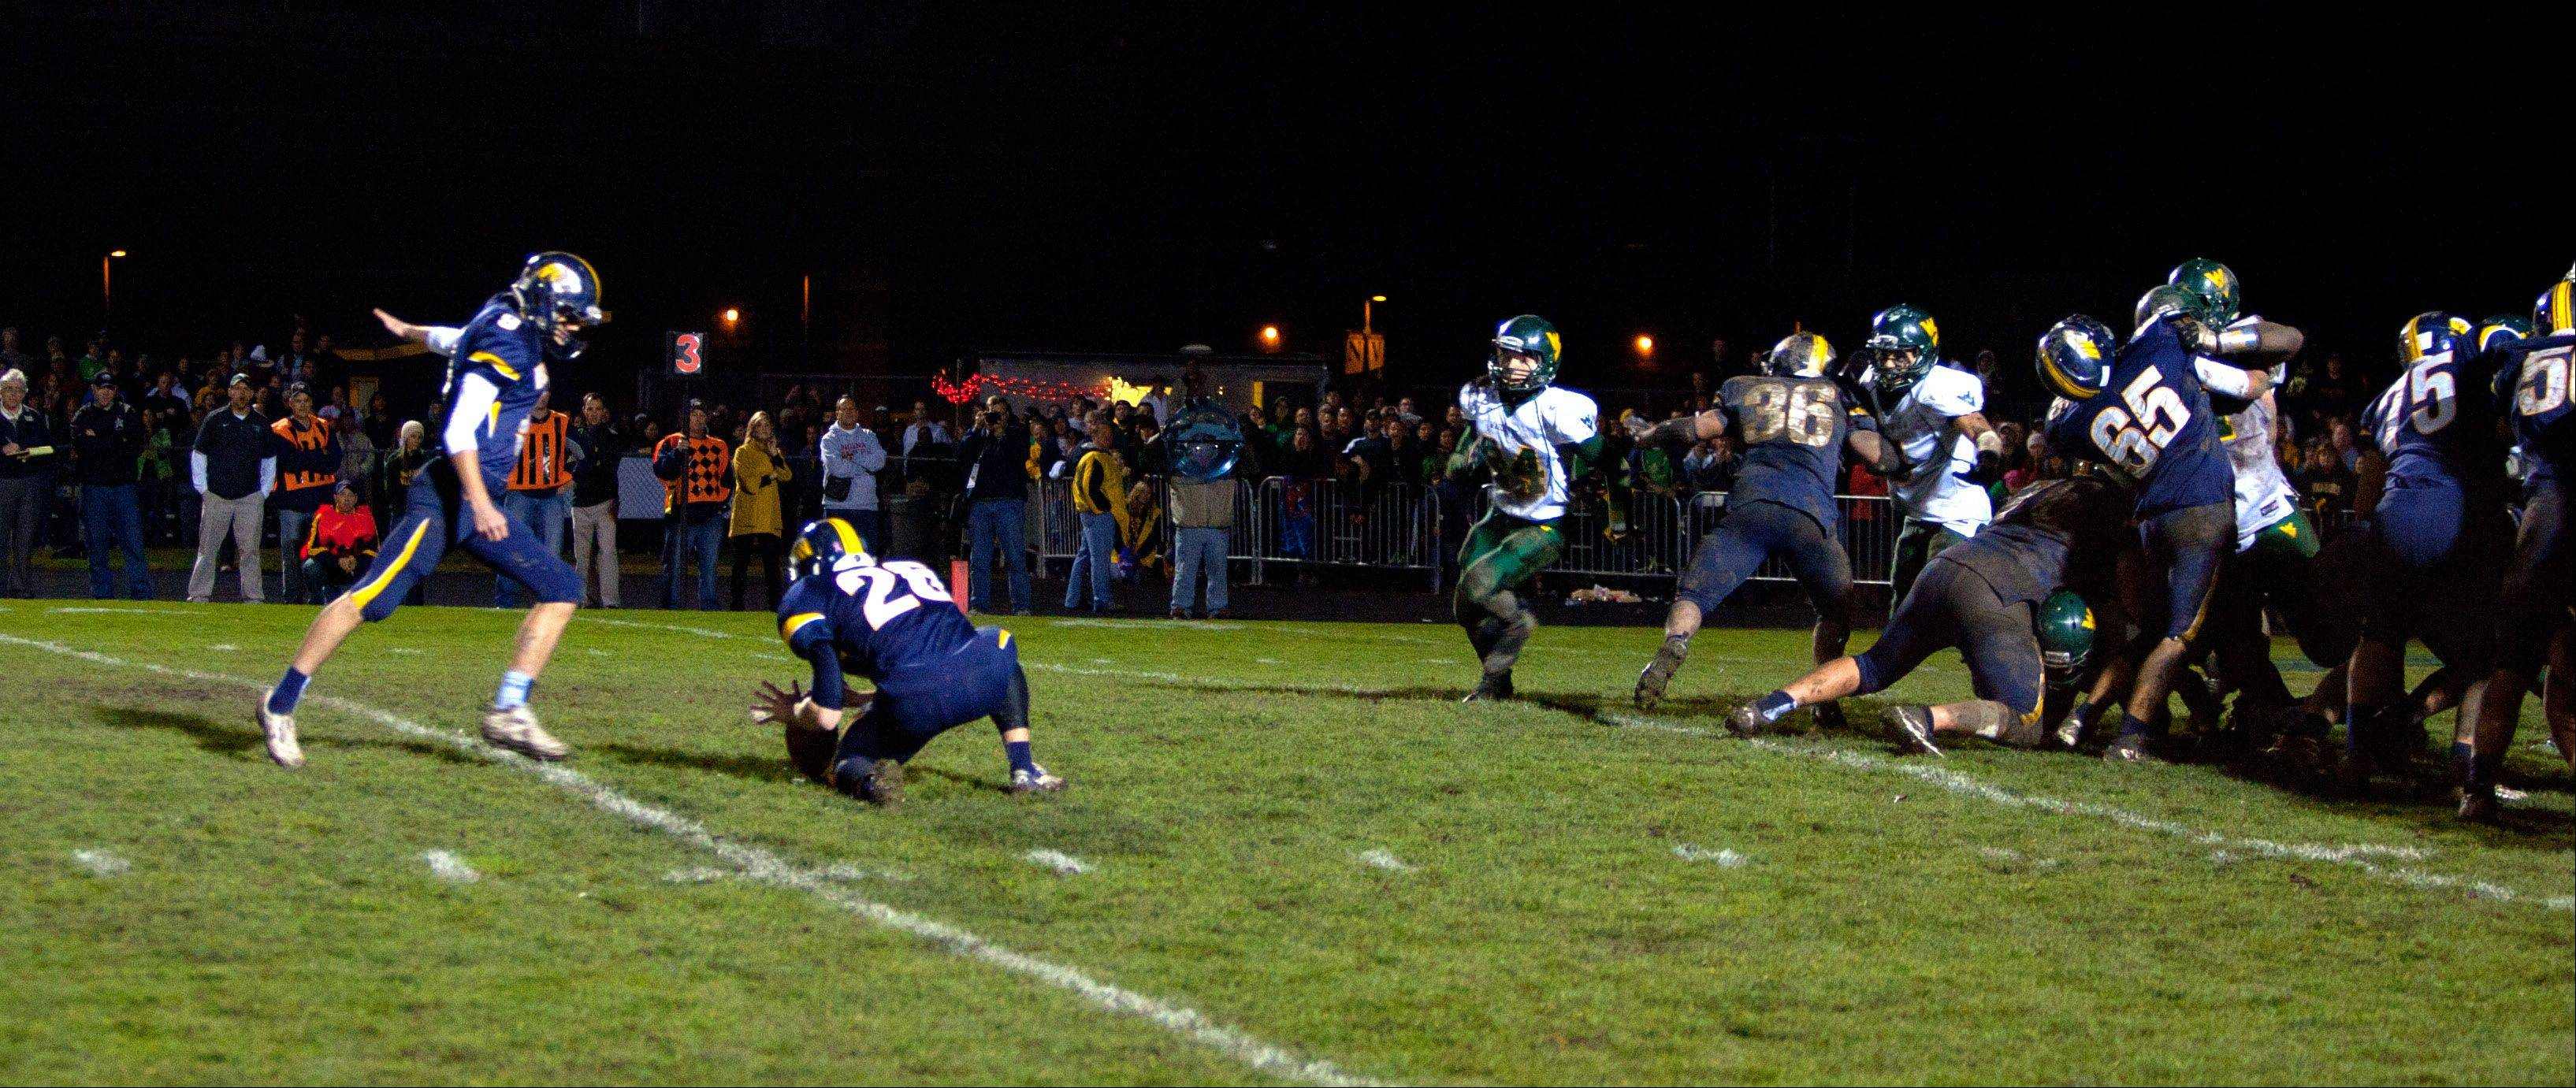 With seconds remaining, Neuqua Valley's Ryan Mulhern kicks the game winning field goal against Waubonsie Valley.